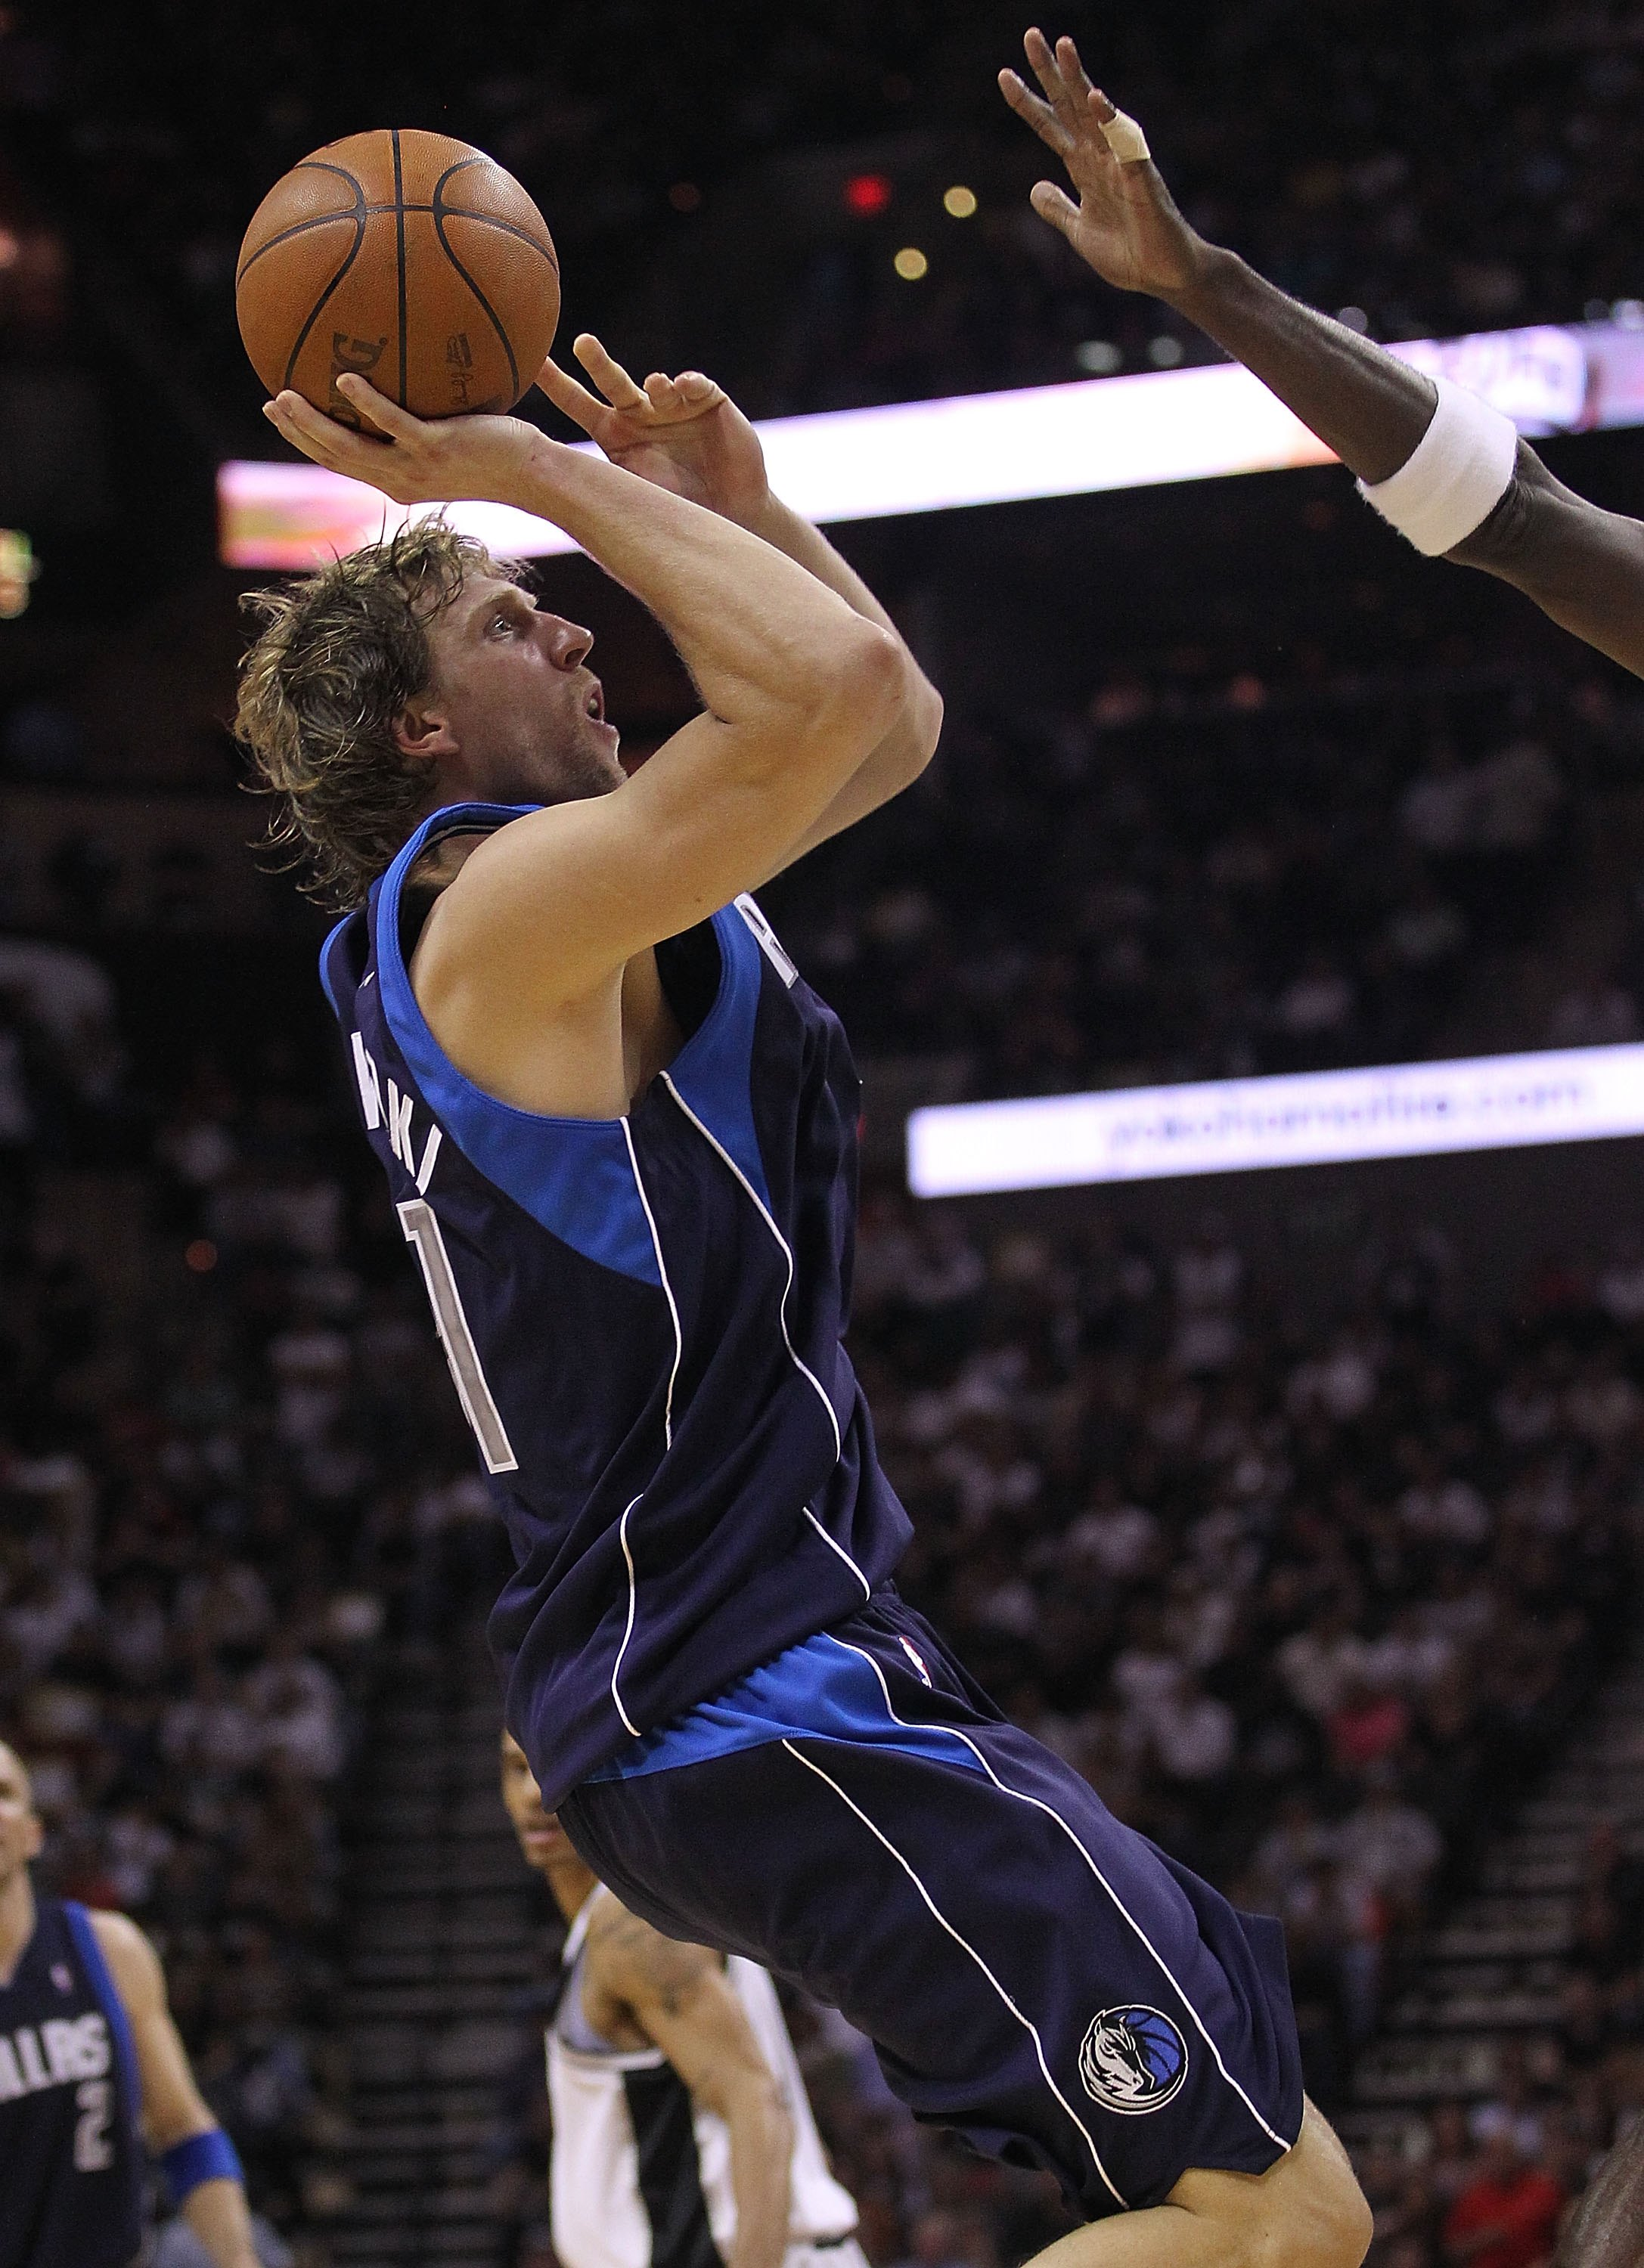 SAN ANTONIO - APRIL 29:  Dirk Nowitzki #41 of the Dallas Mavericks in Game Six of the Western Conference Quarterfinals during the 2010 NBA Playoffs at AT&T Center on April 29, 2010 in San Antonio, Texas. NOTE TO USER: User expressly acknowledges and agree